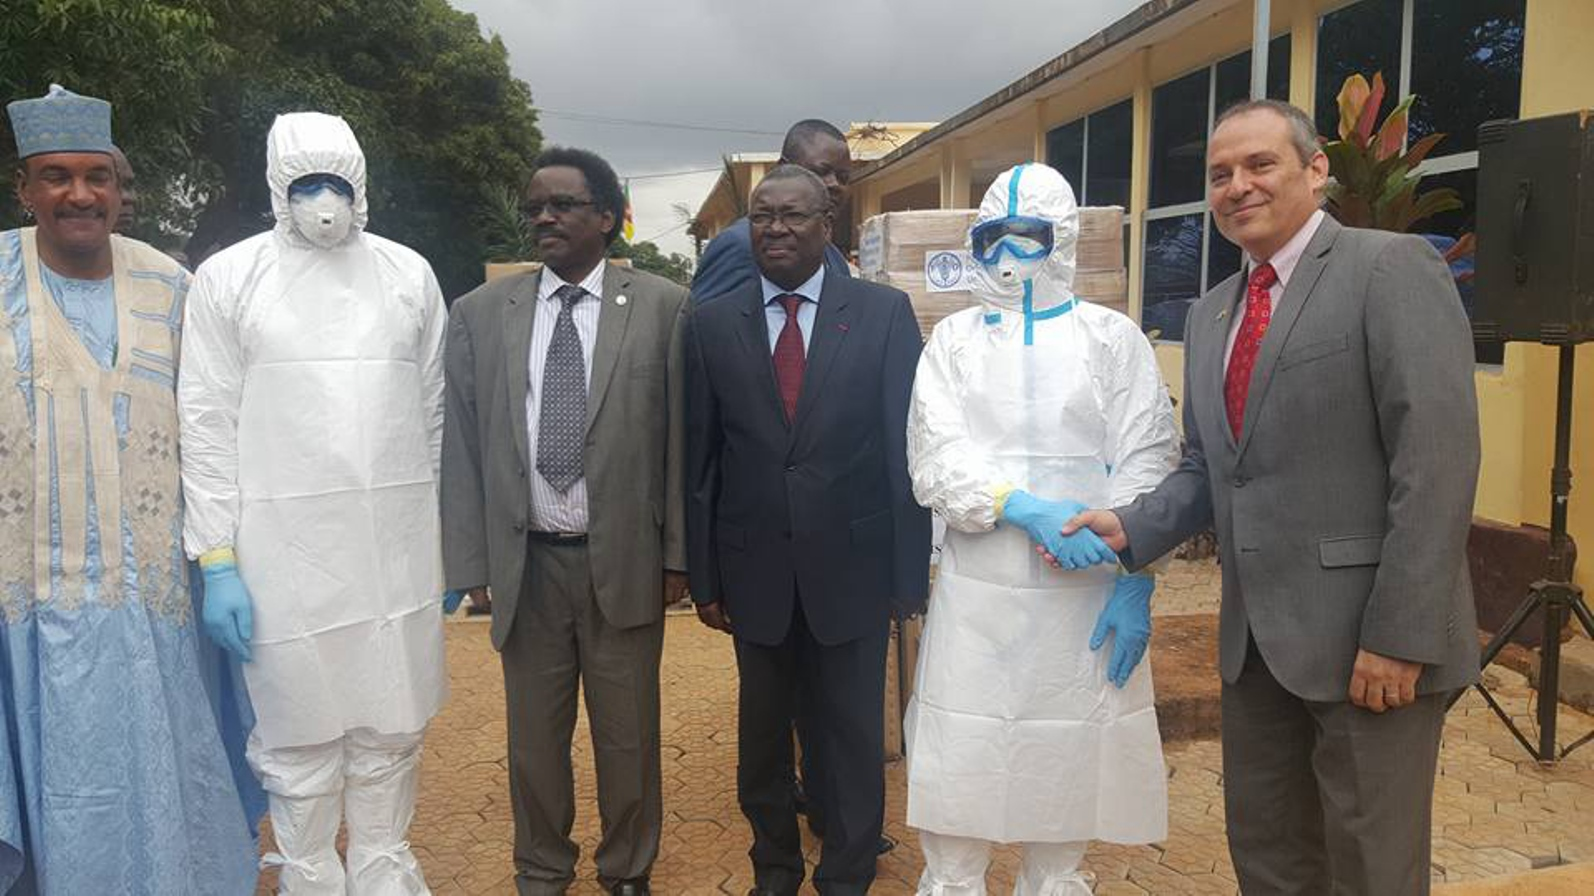 Israeli Ambassador to Cameroon Ran Gidor, right, delivers protective gear to local authorities. Photo courtesy of MASHAV